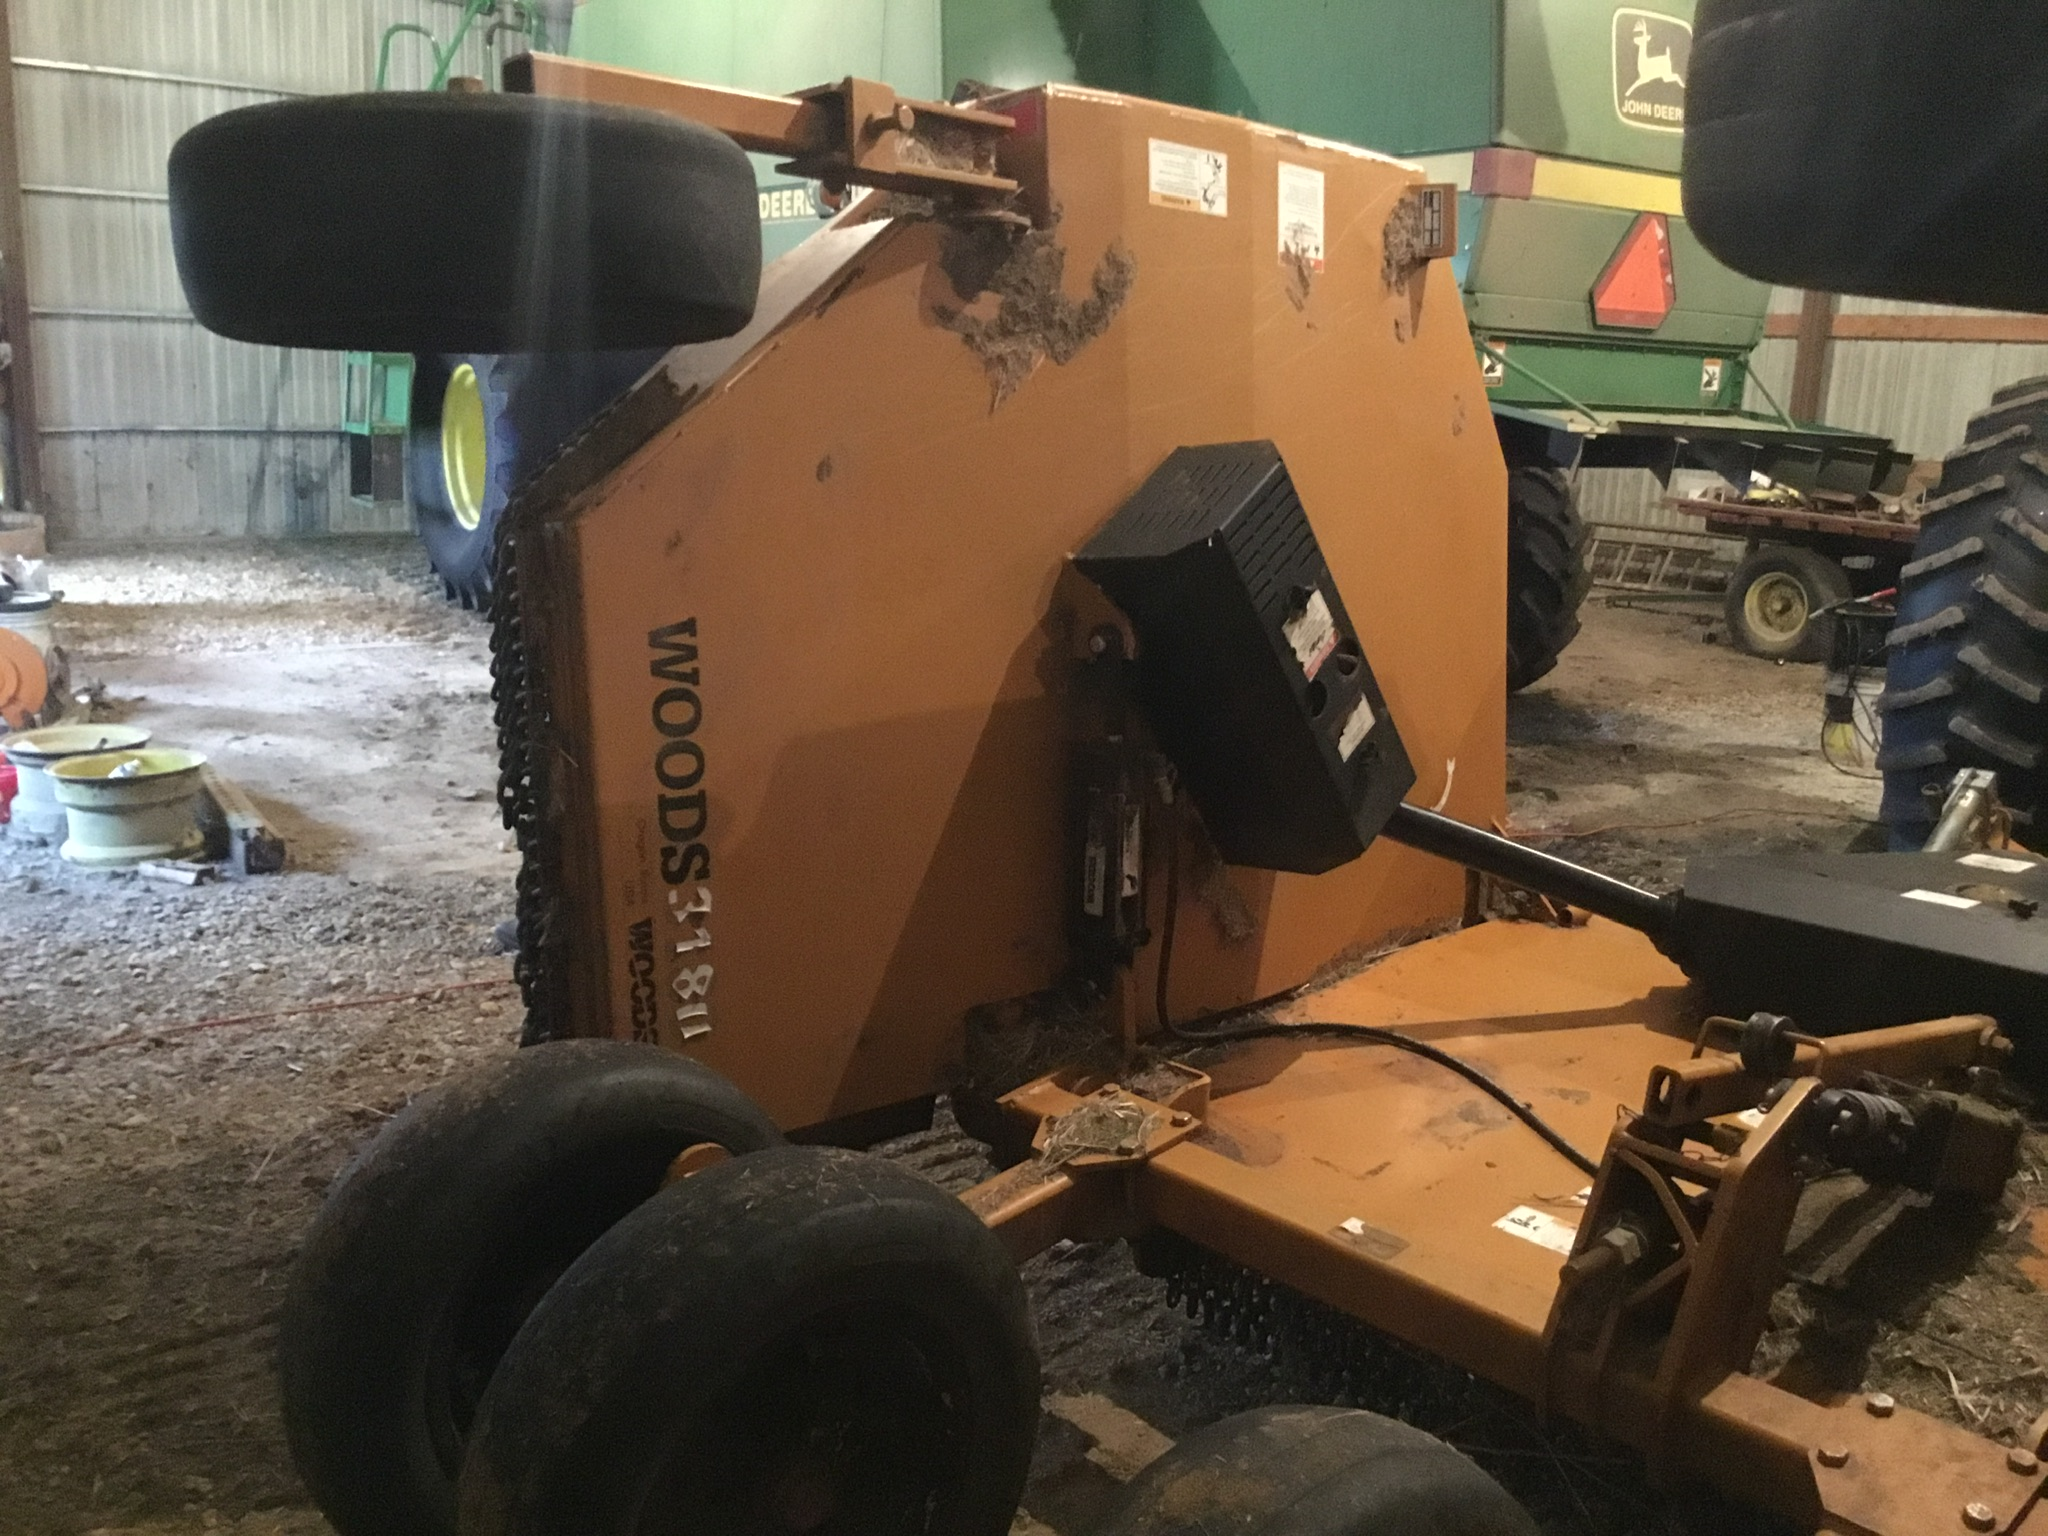 Woods 9309 Bat Wing Mower, 15Ft., 1,000 PTO, Chains, 6 Aircraft Tires, Serial #745029 - Image 9 of 9